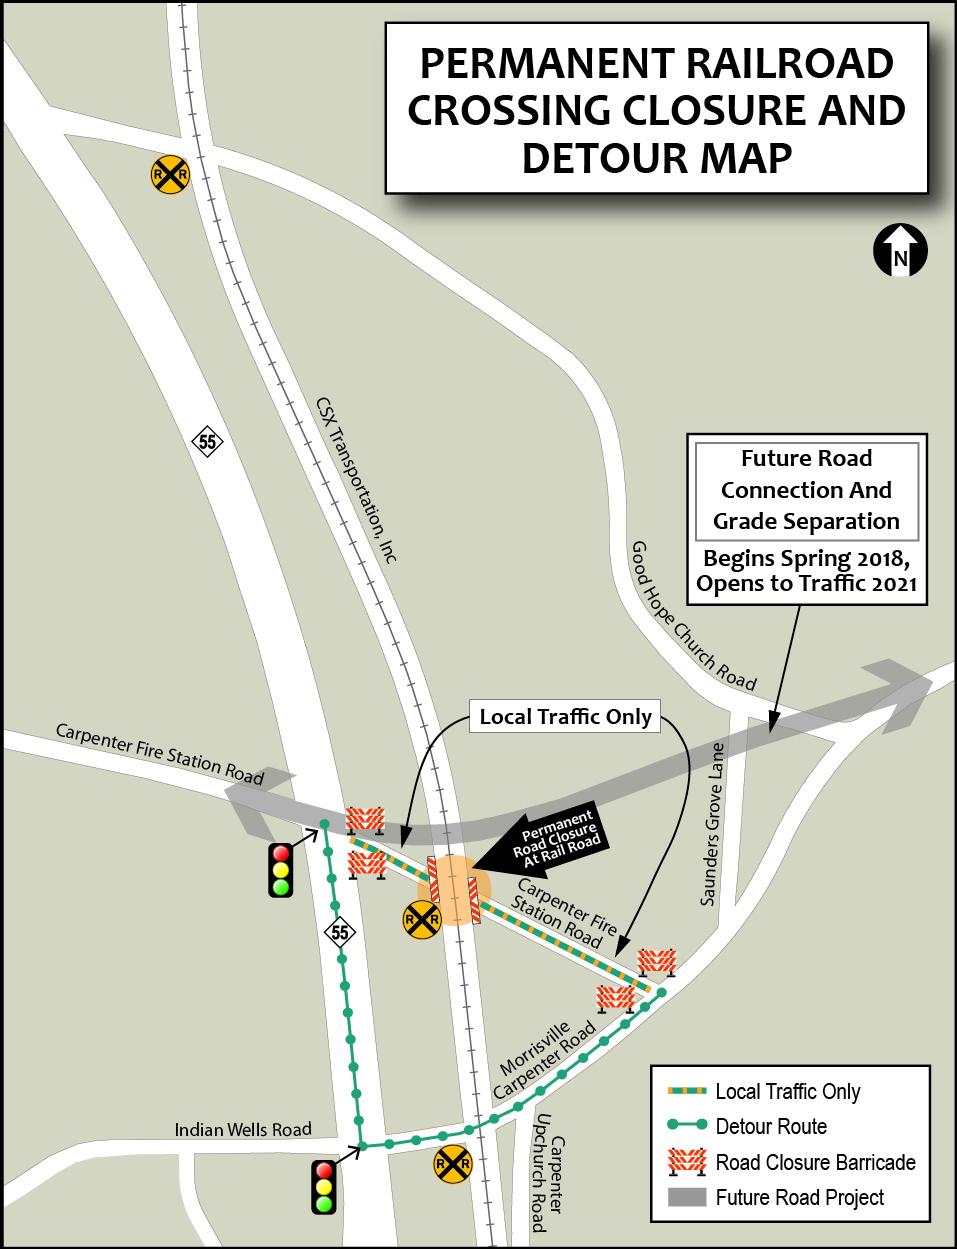 Carpenter Fire Station Road Bridge And Intersection Improvements